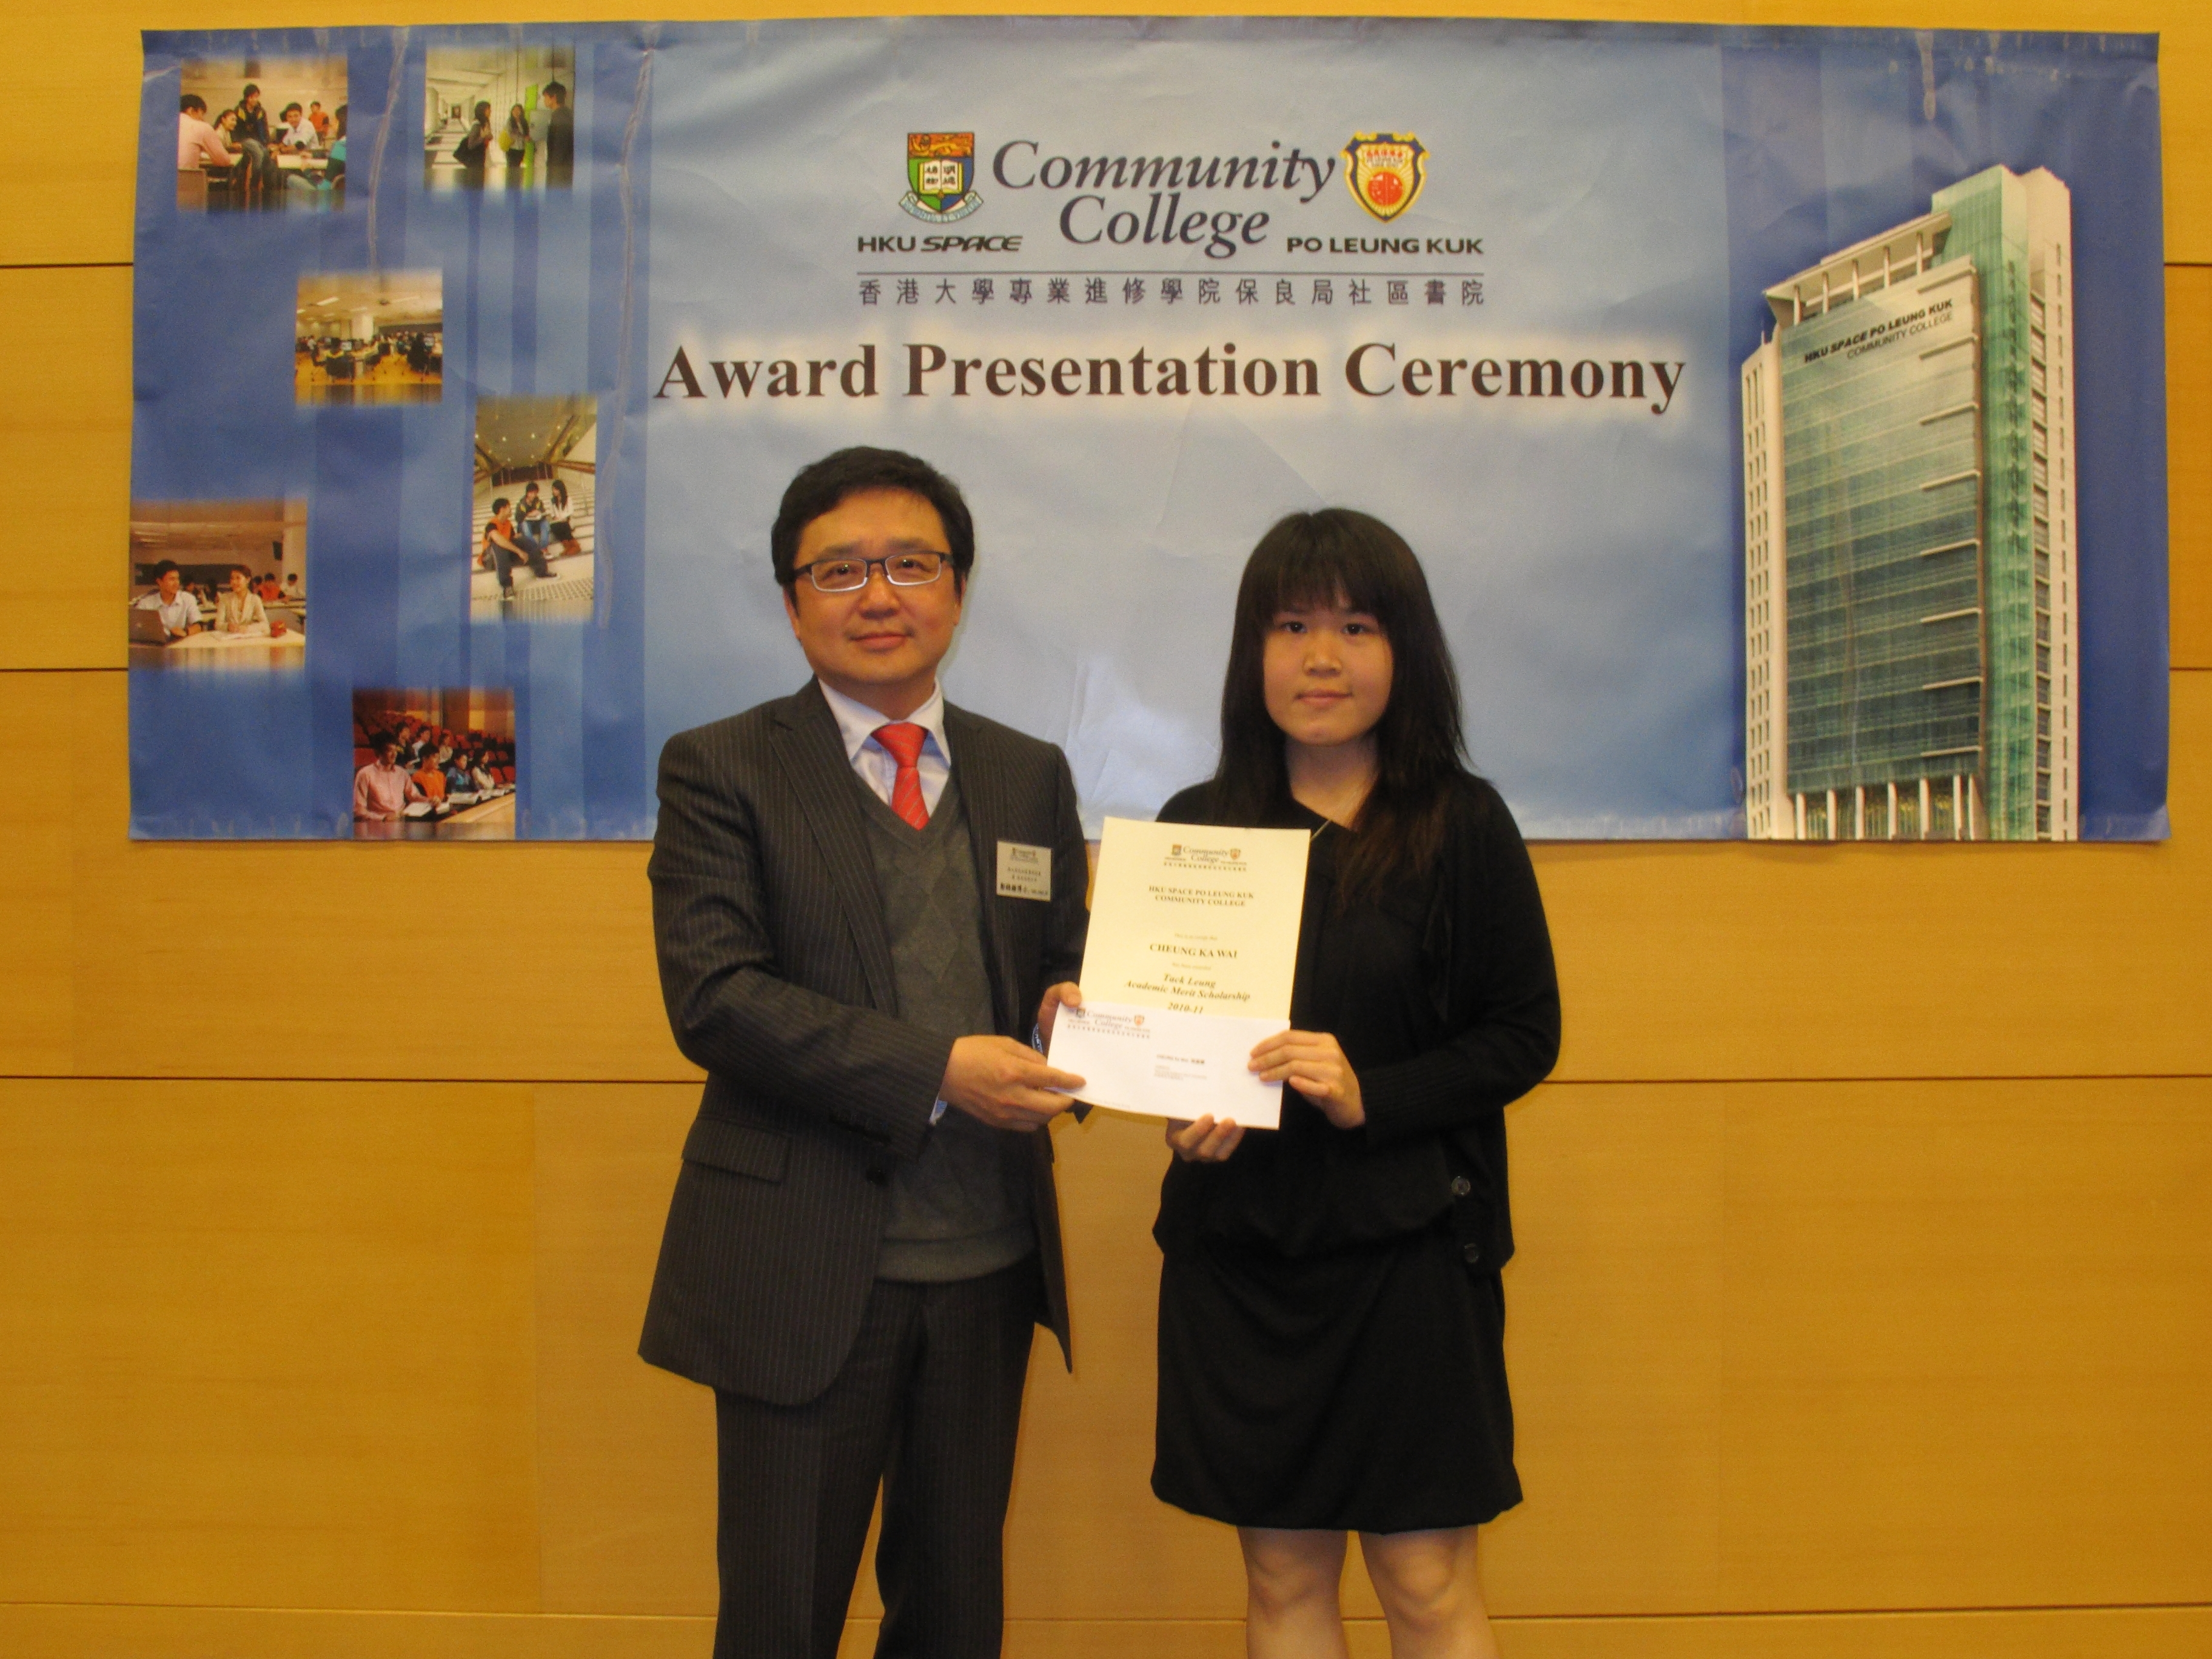 Award Presentation Ceremony 2011 - Photo - 9